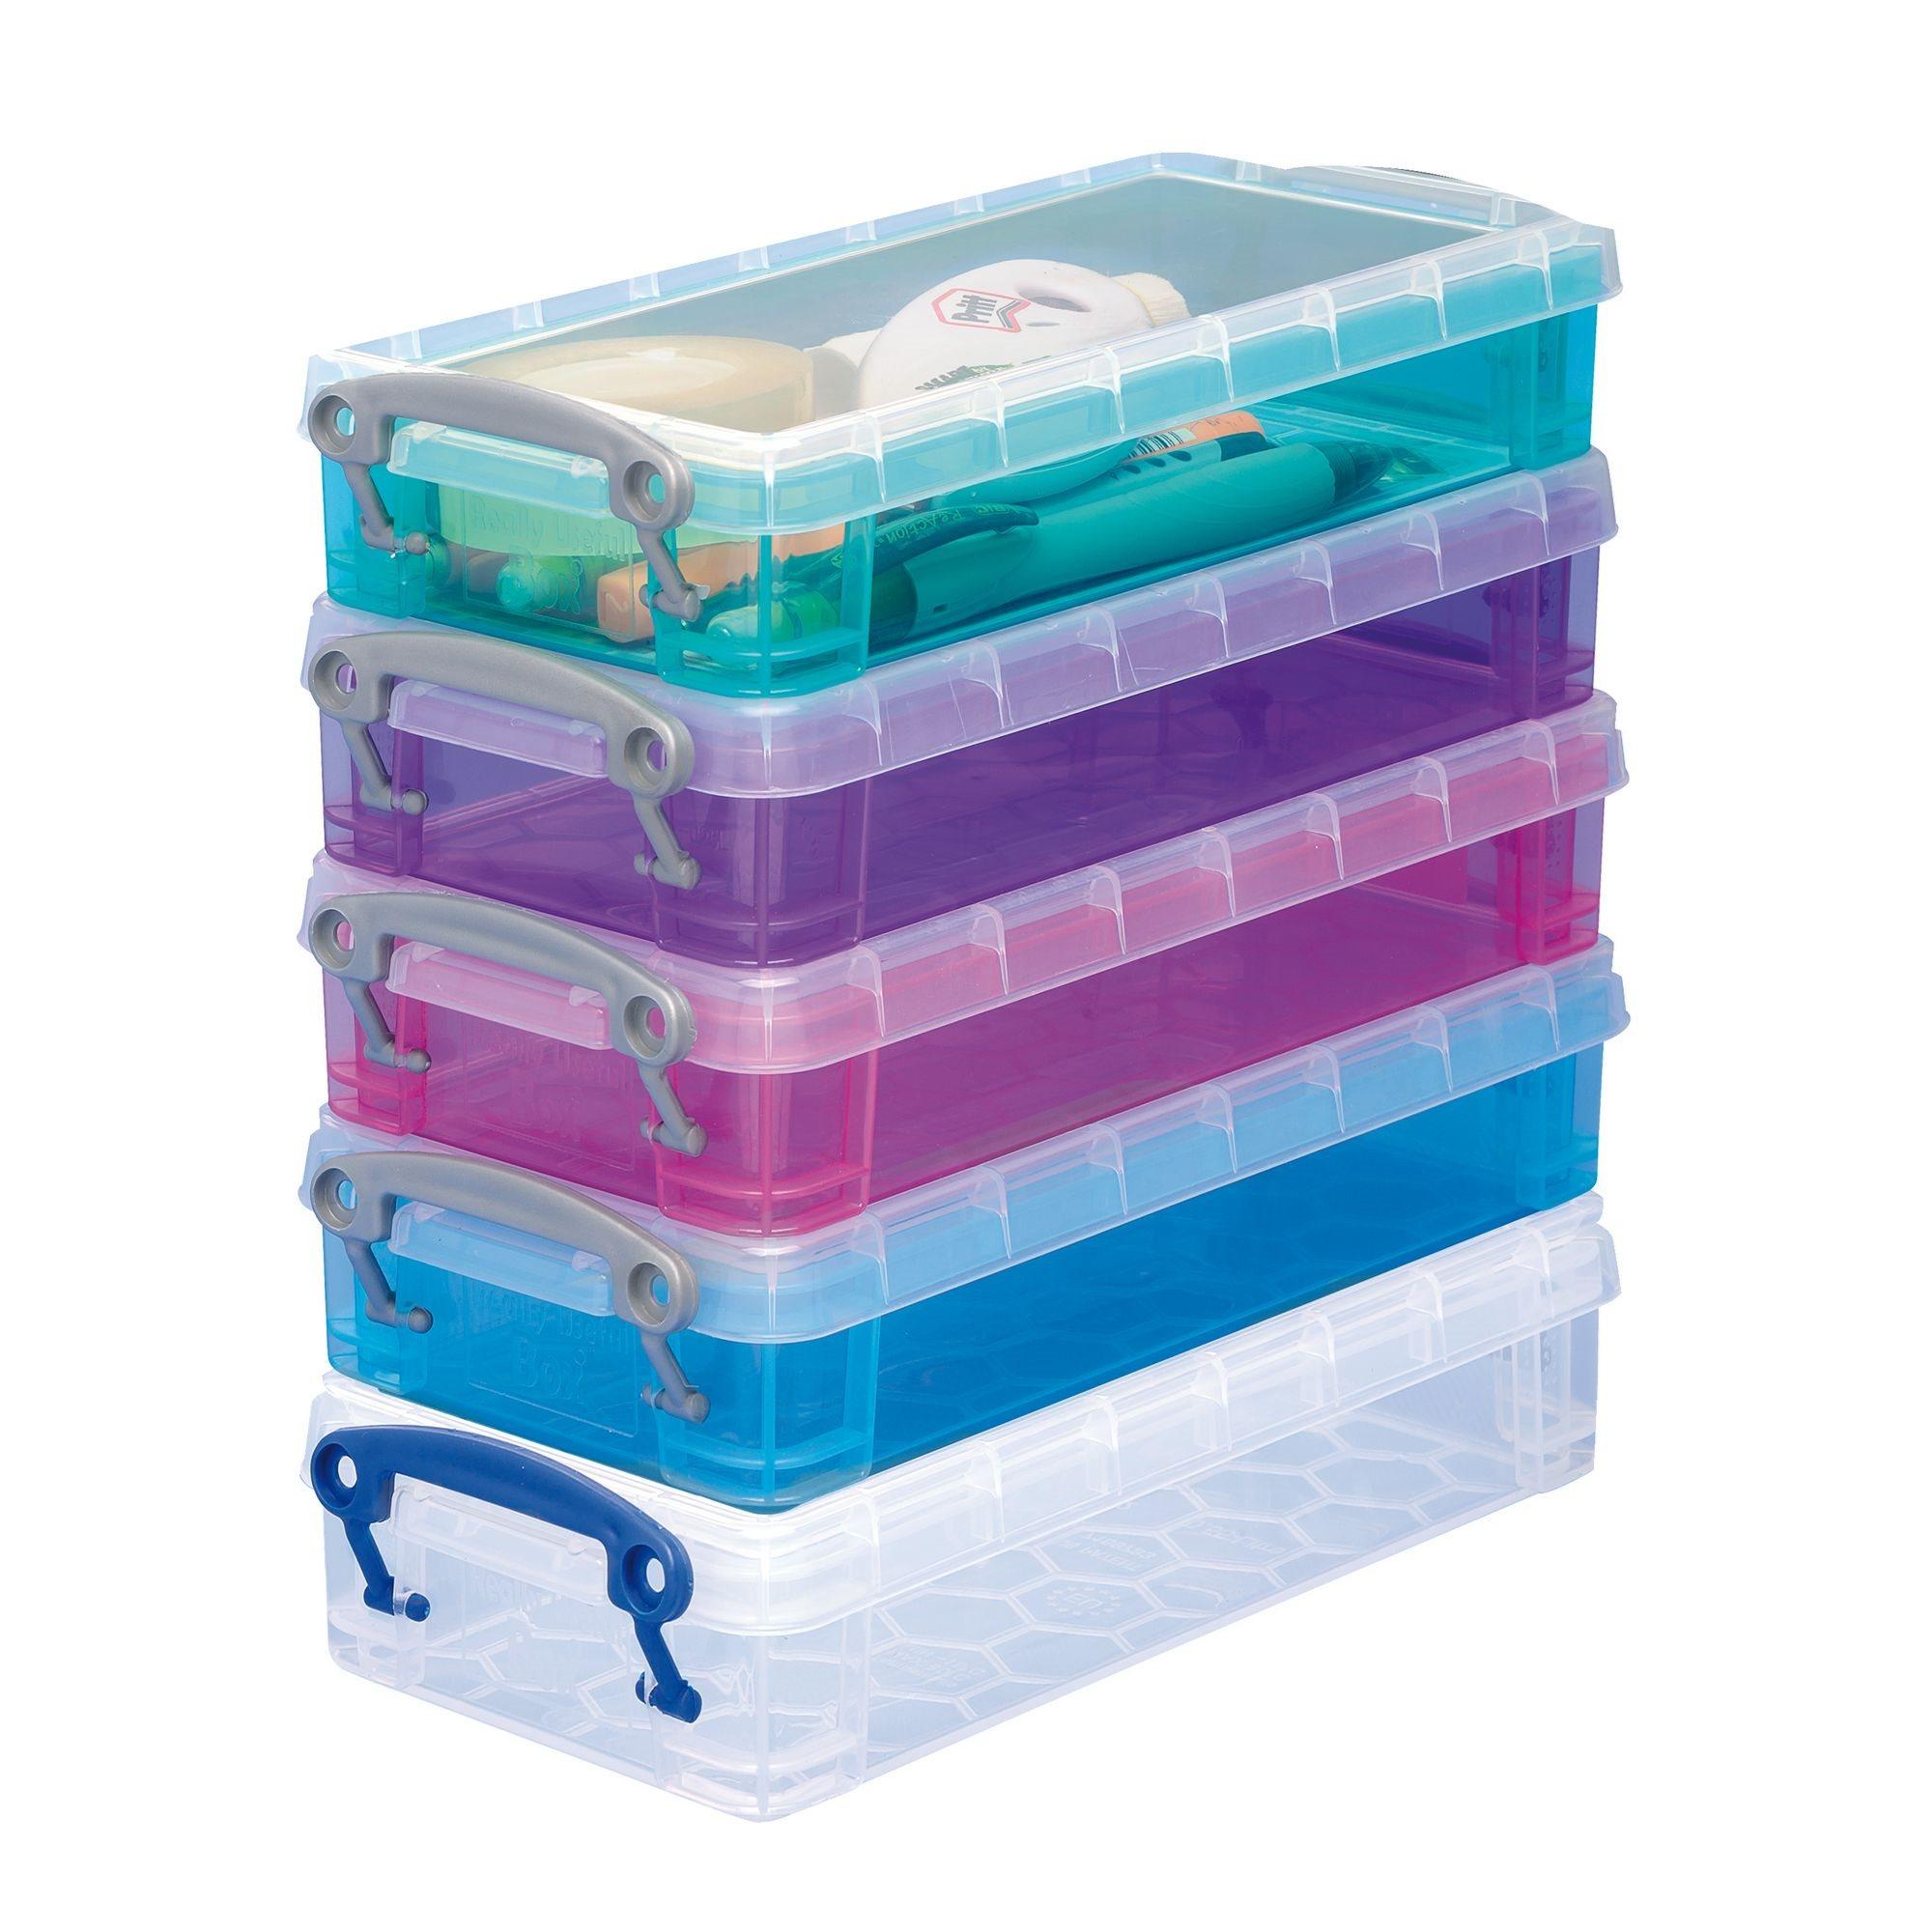 Boite De Rangement Plastique 0 55 L Really Useful Box Couleurs Assorties Lot De 5